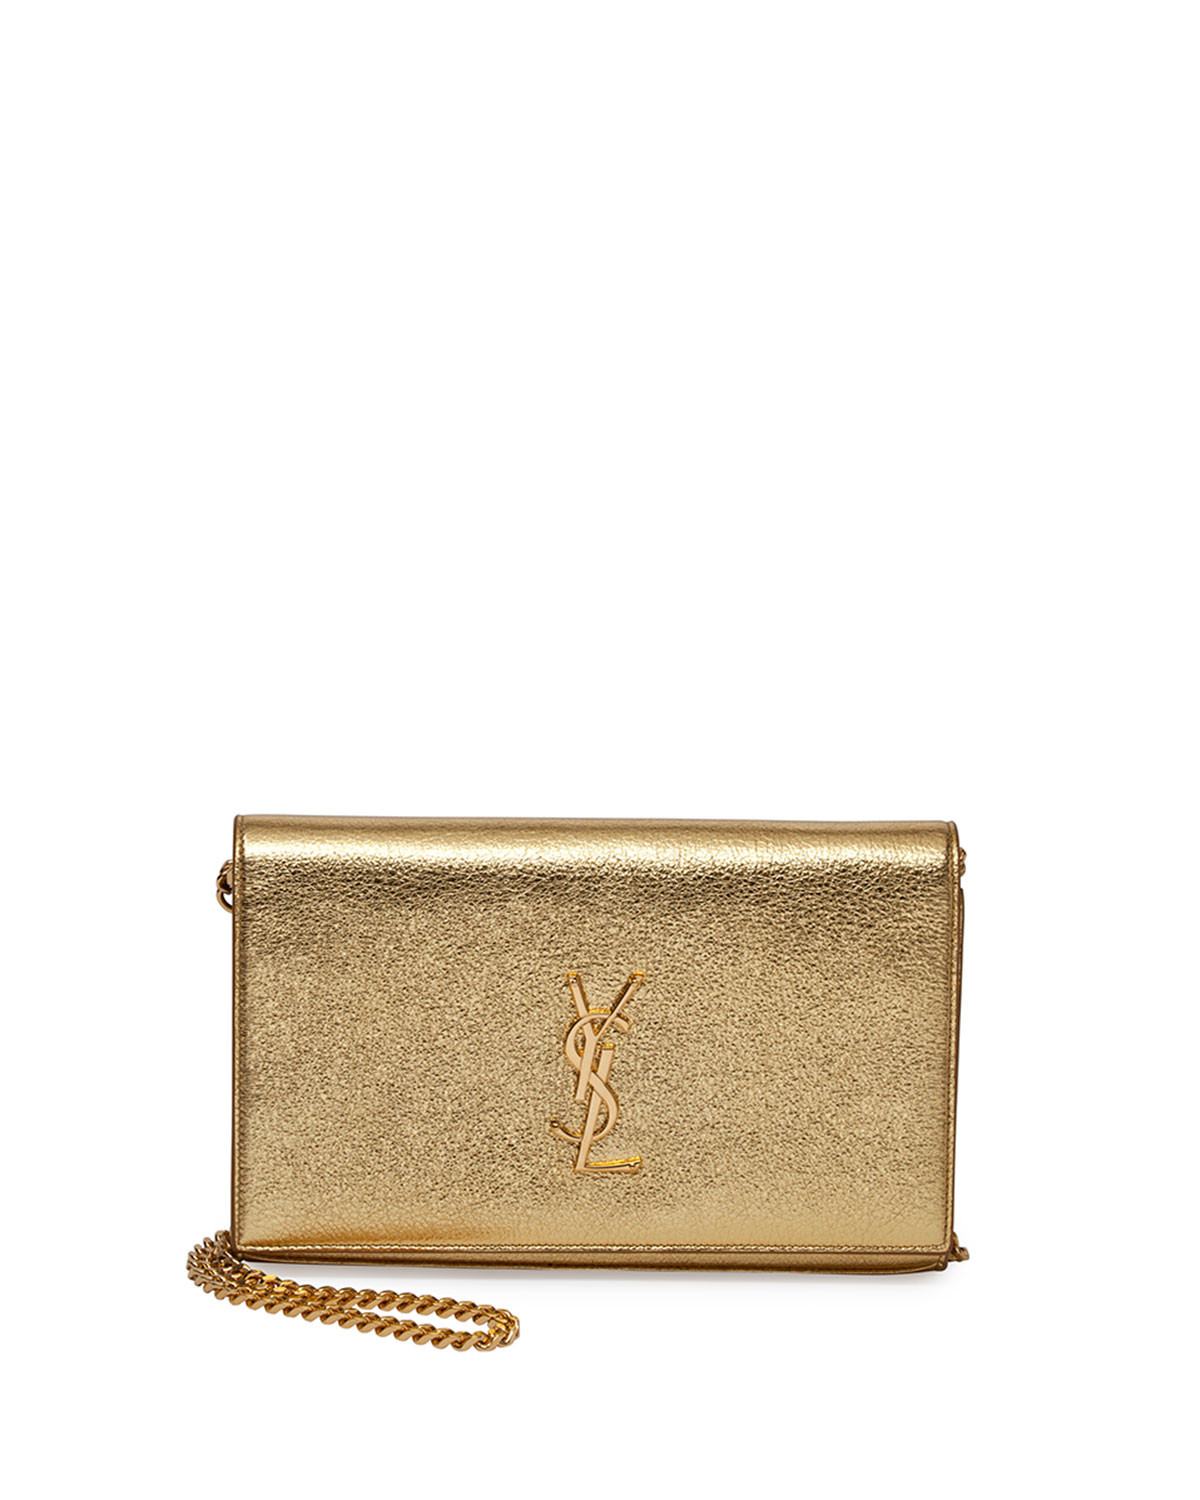 Monogram Metallic Chain Wallet, Gold, Women's - Saint Laurent